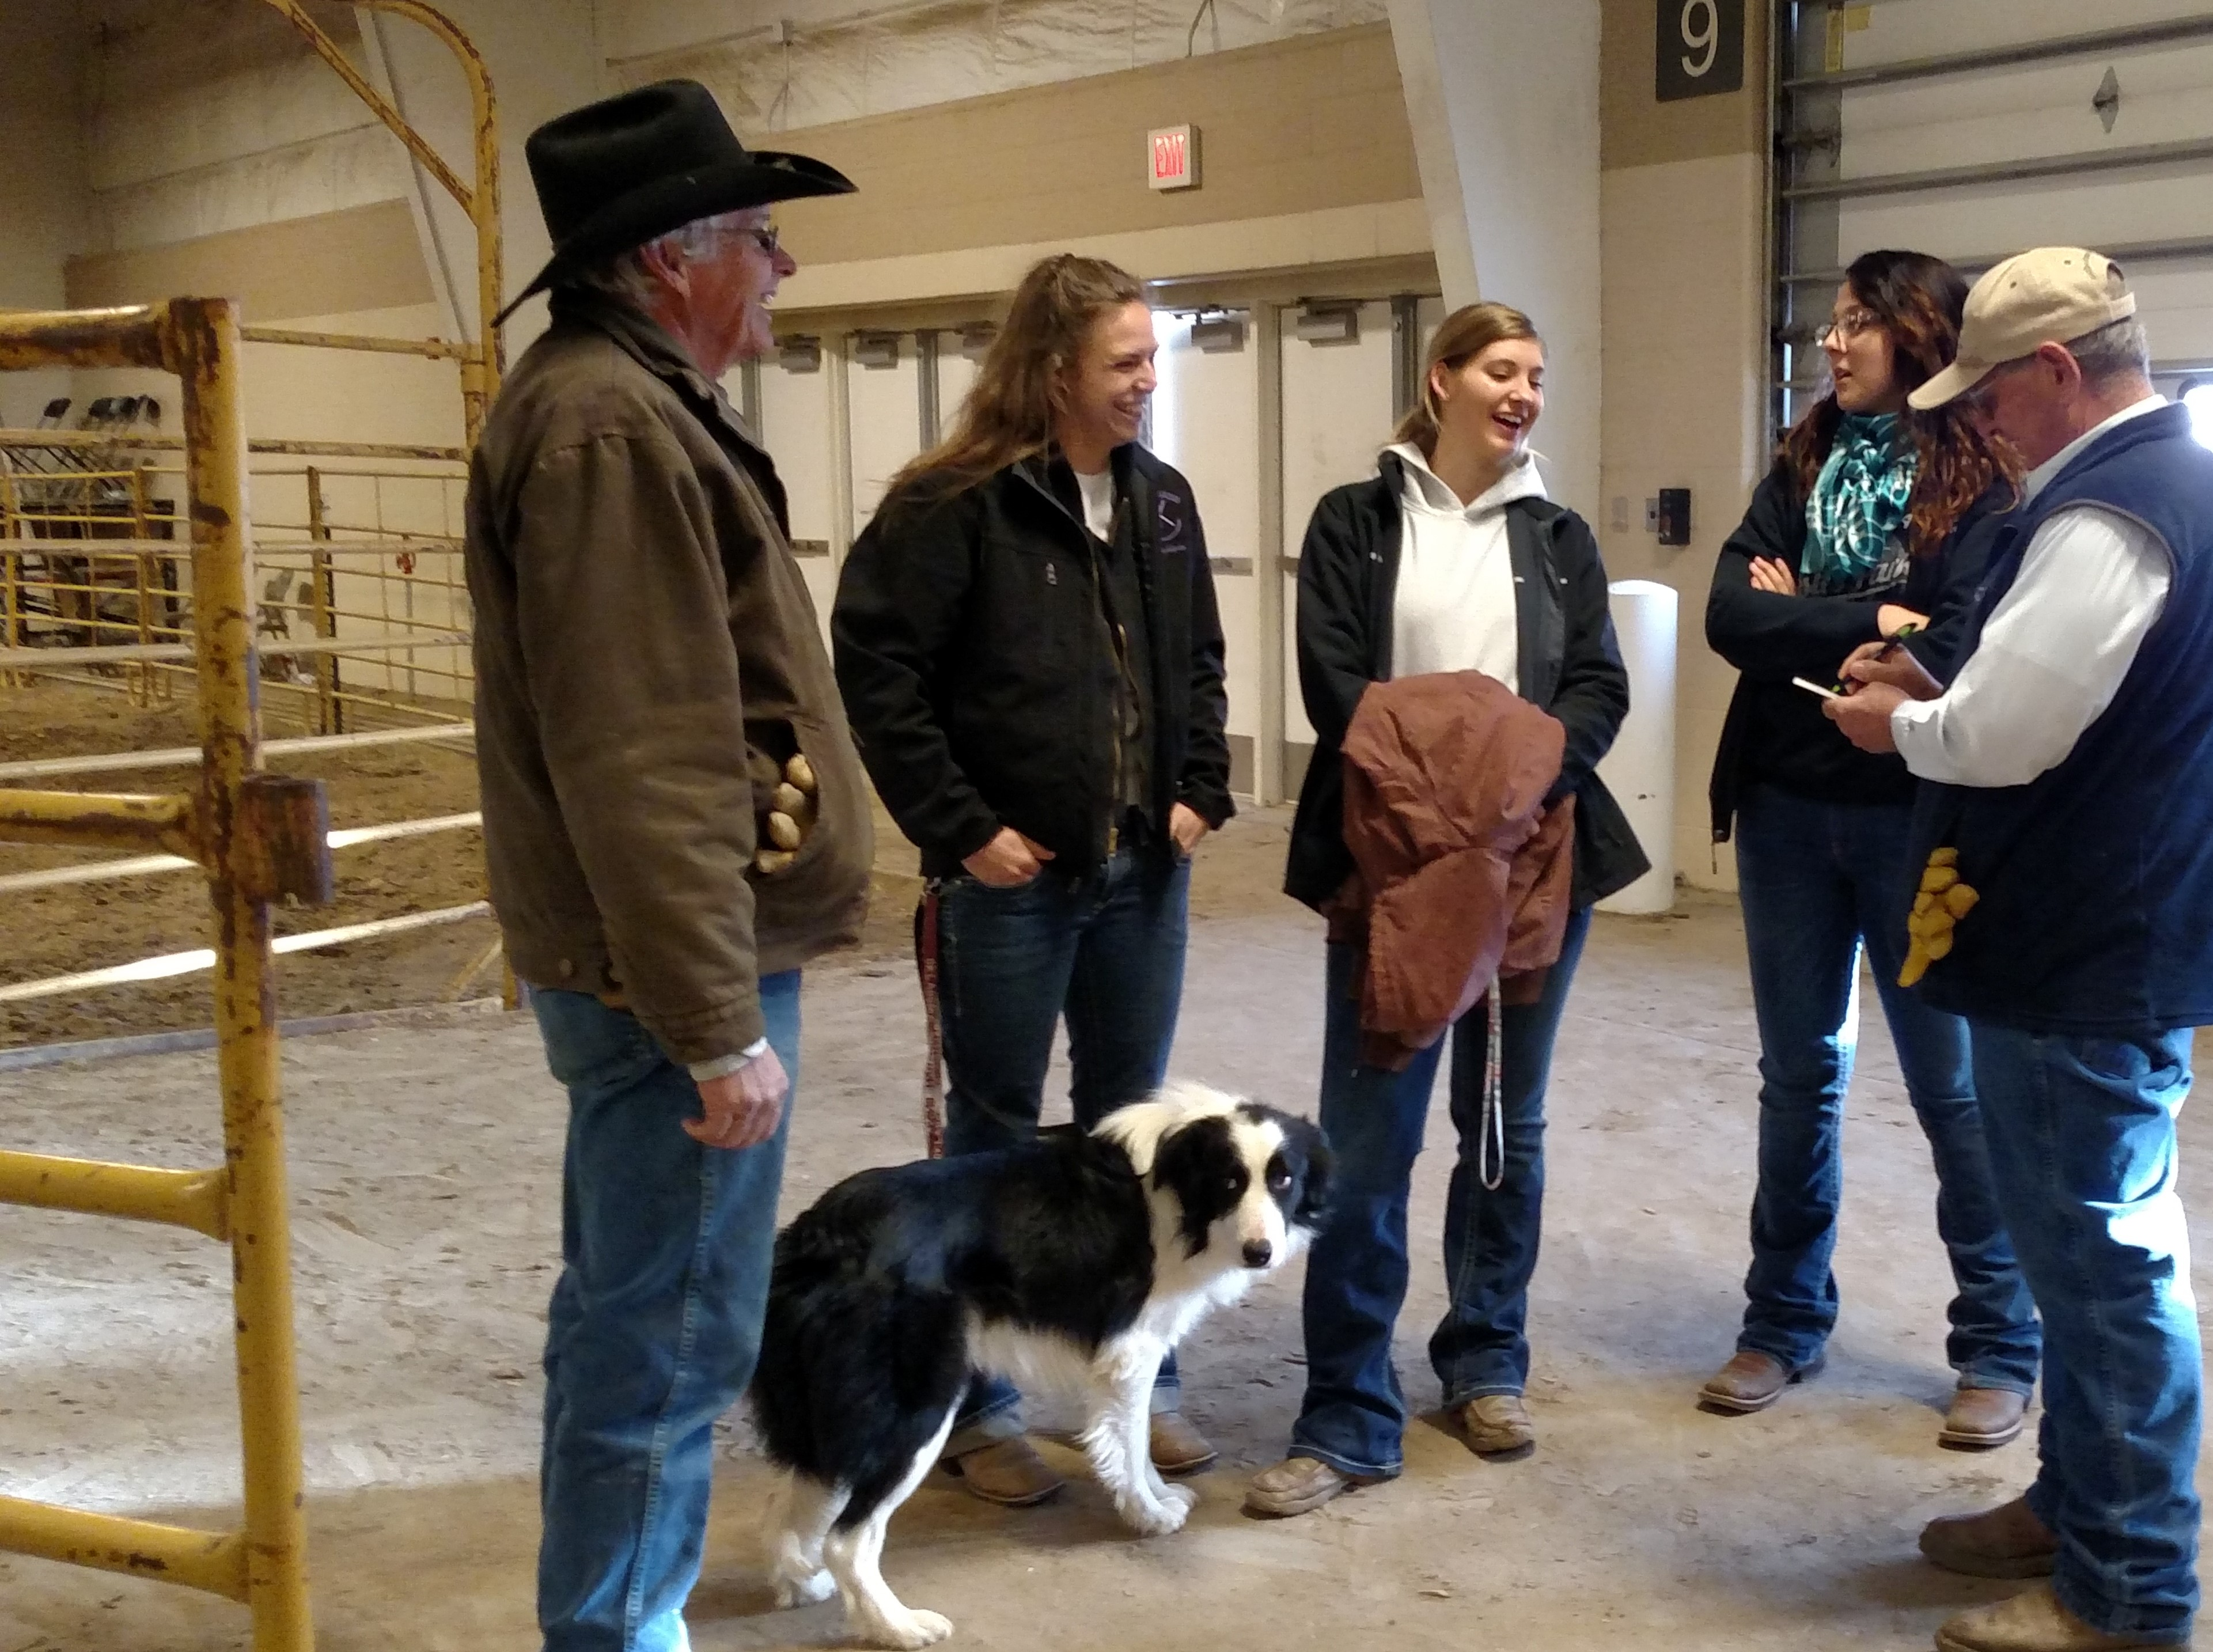 Stock dog handlers with the NCTA Stock Dog Team and Outback Stock Dog Club visit while at the Cattlemen's Classic. (Bowmaster-Cole photo)